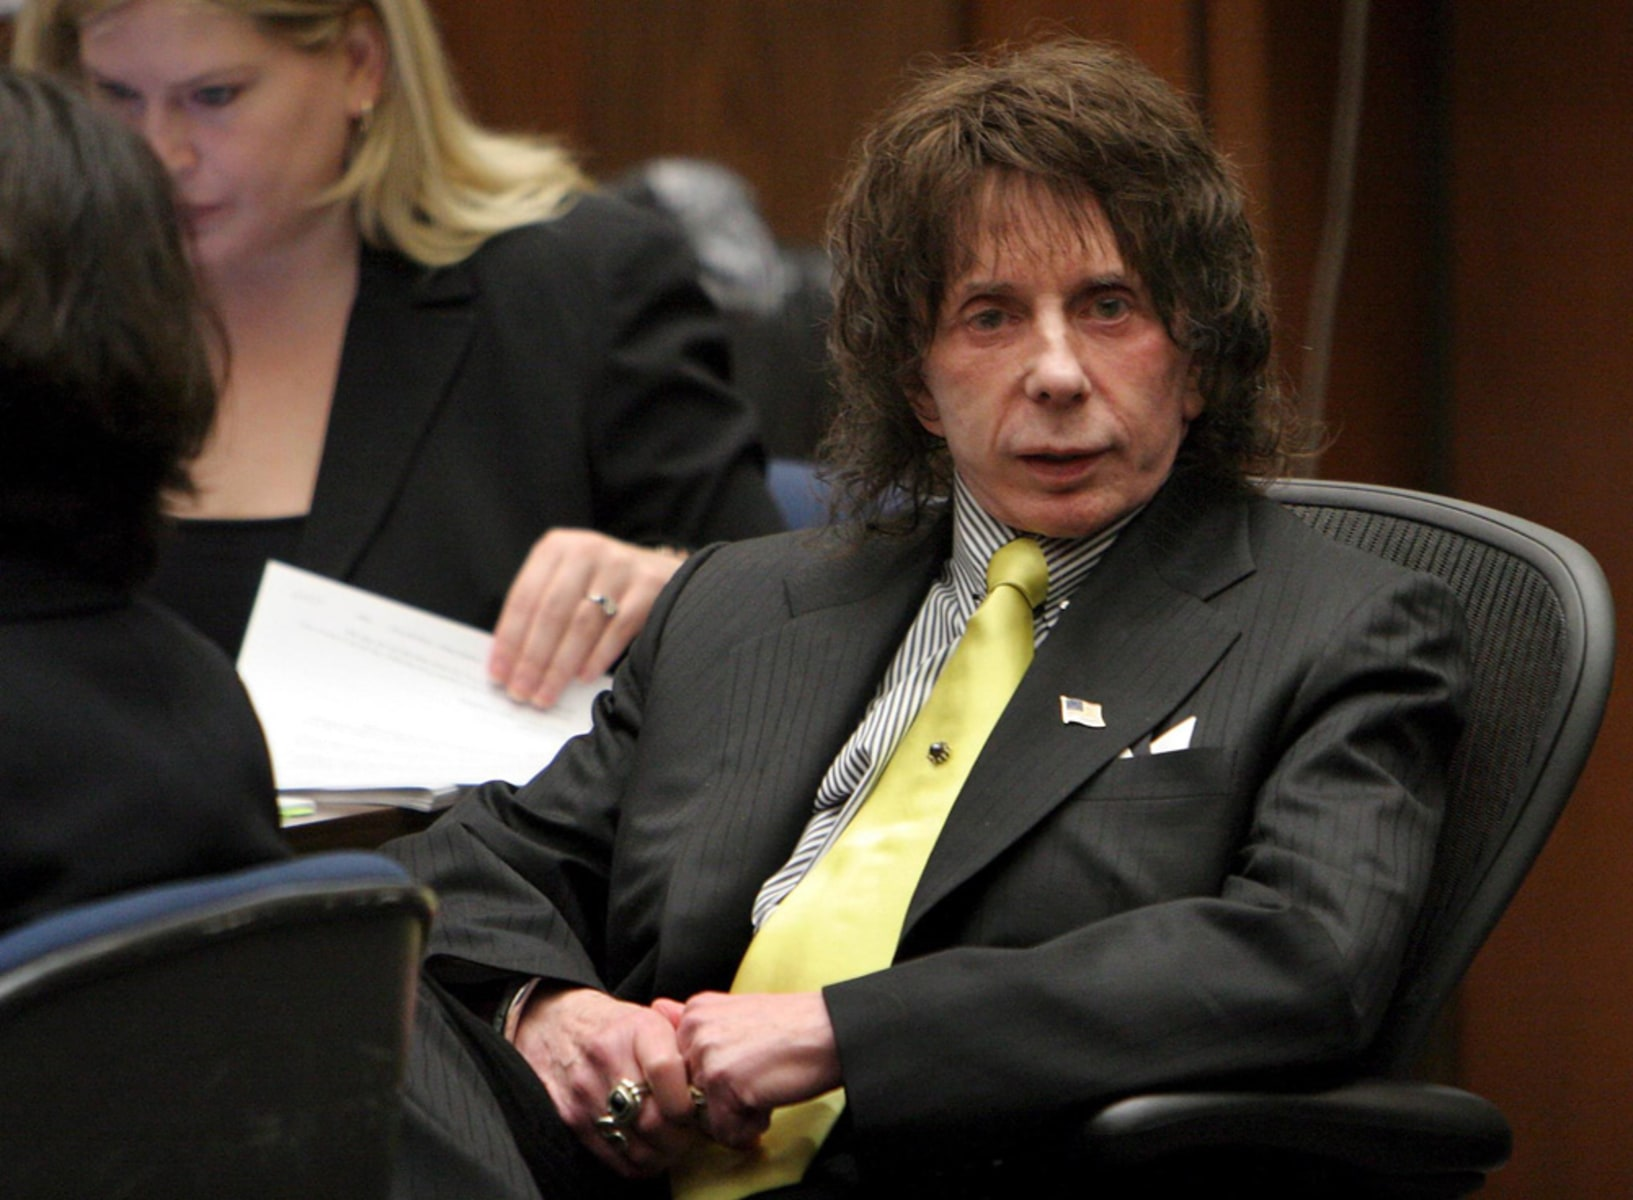 Phil Spector's life and times - TODAY.com